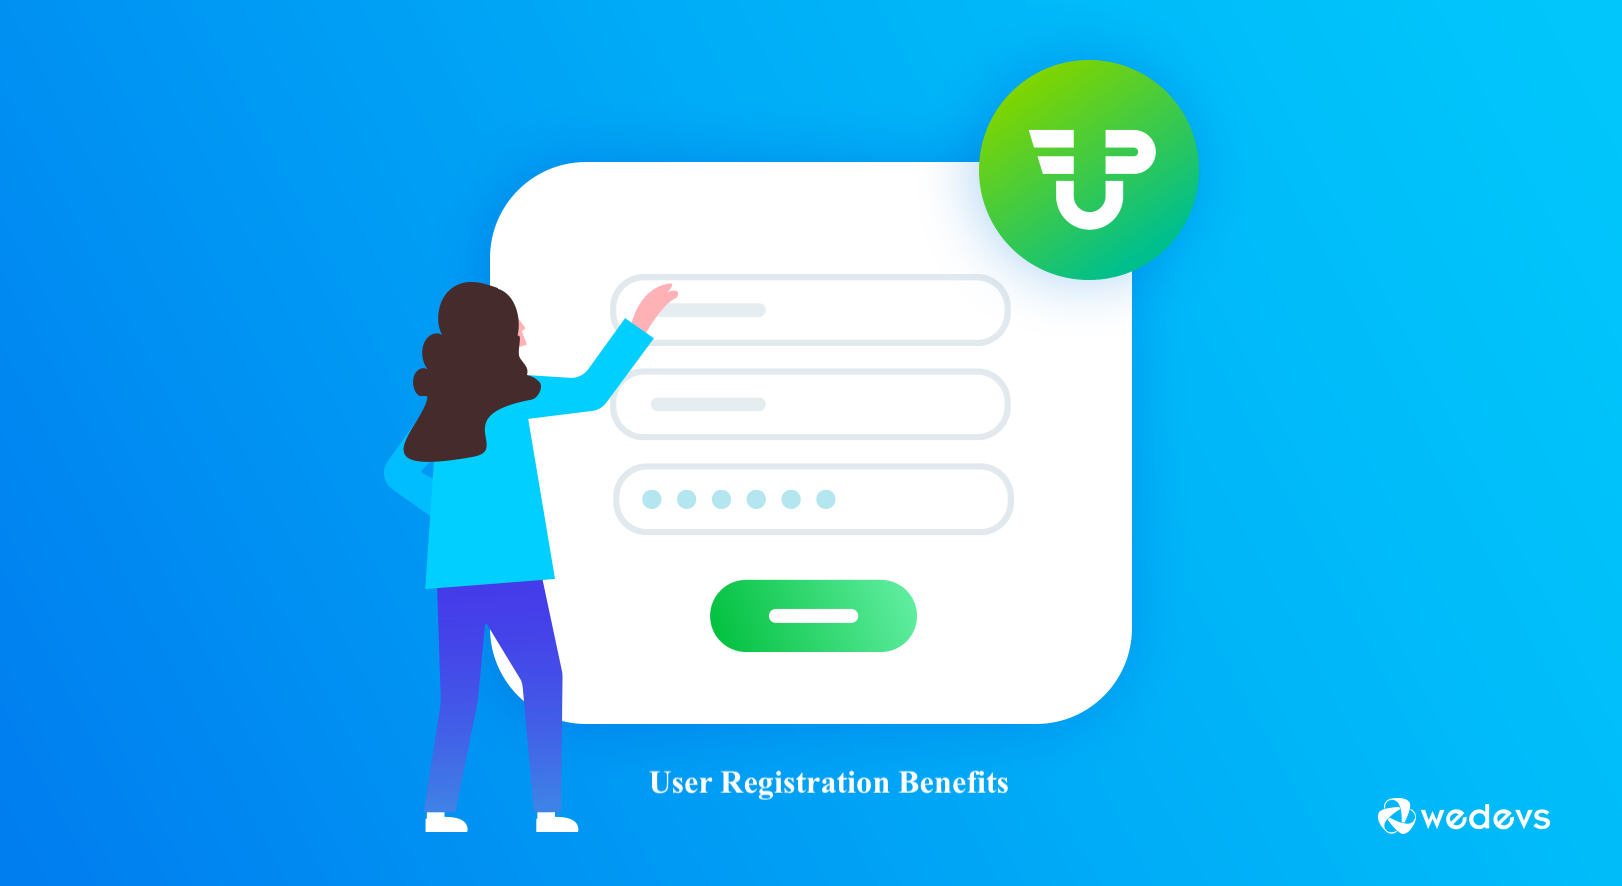 User Registration Benefits